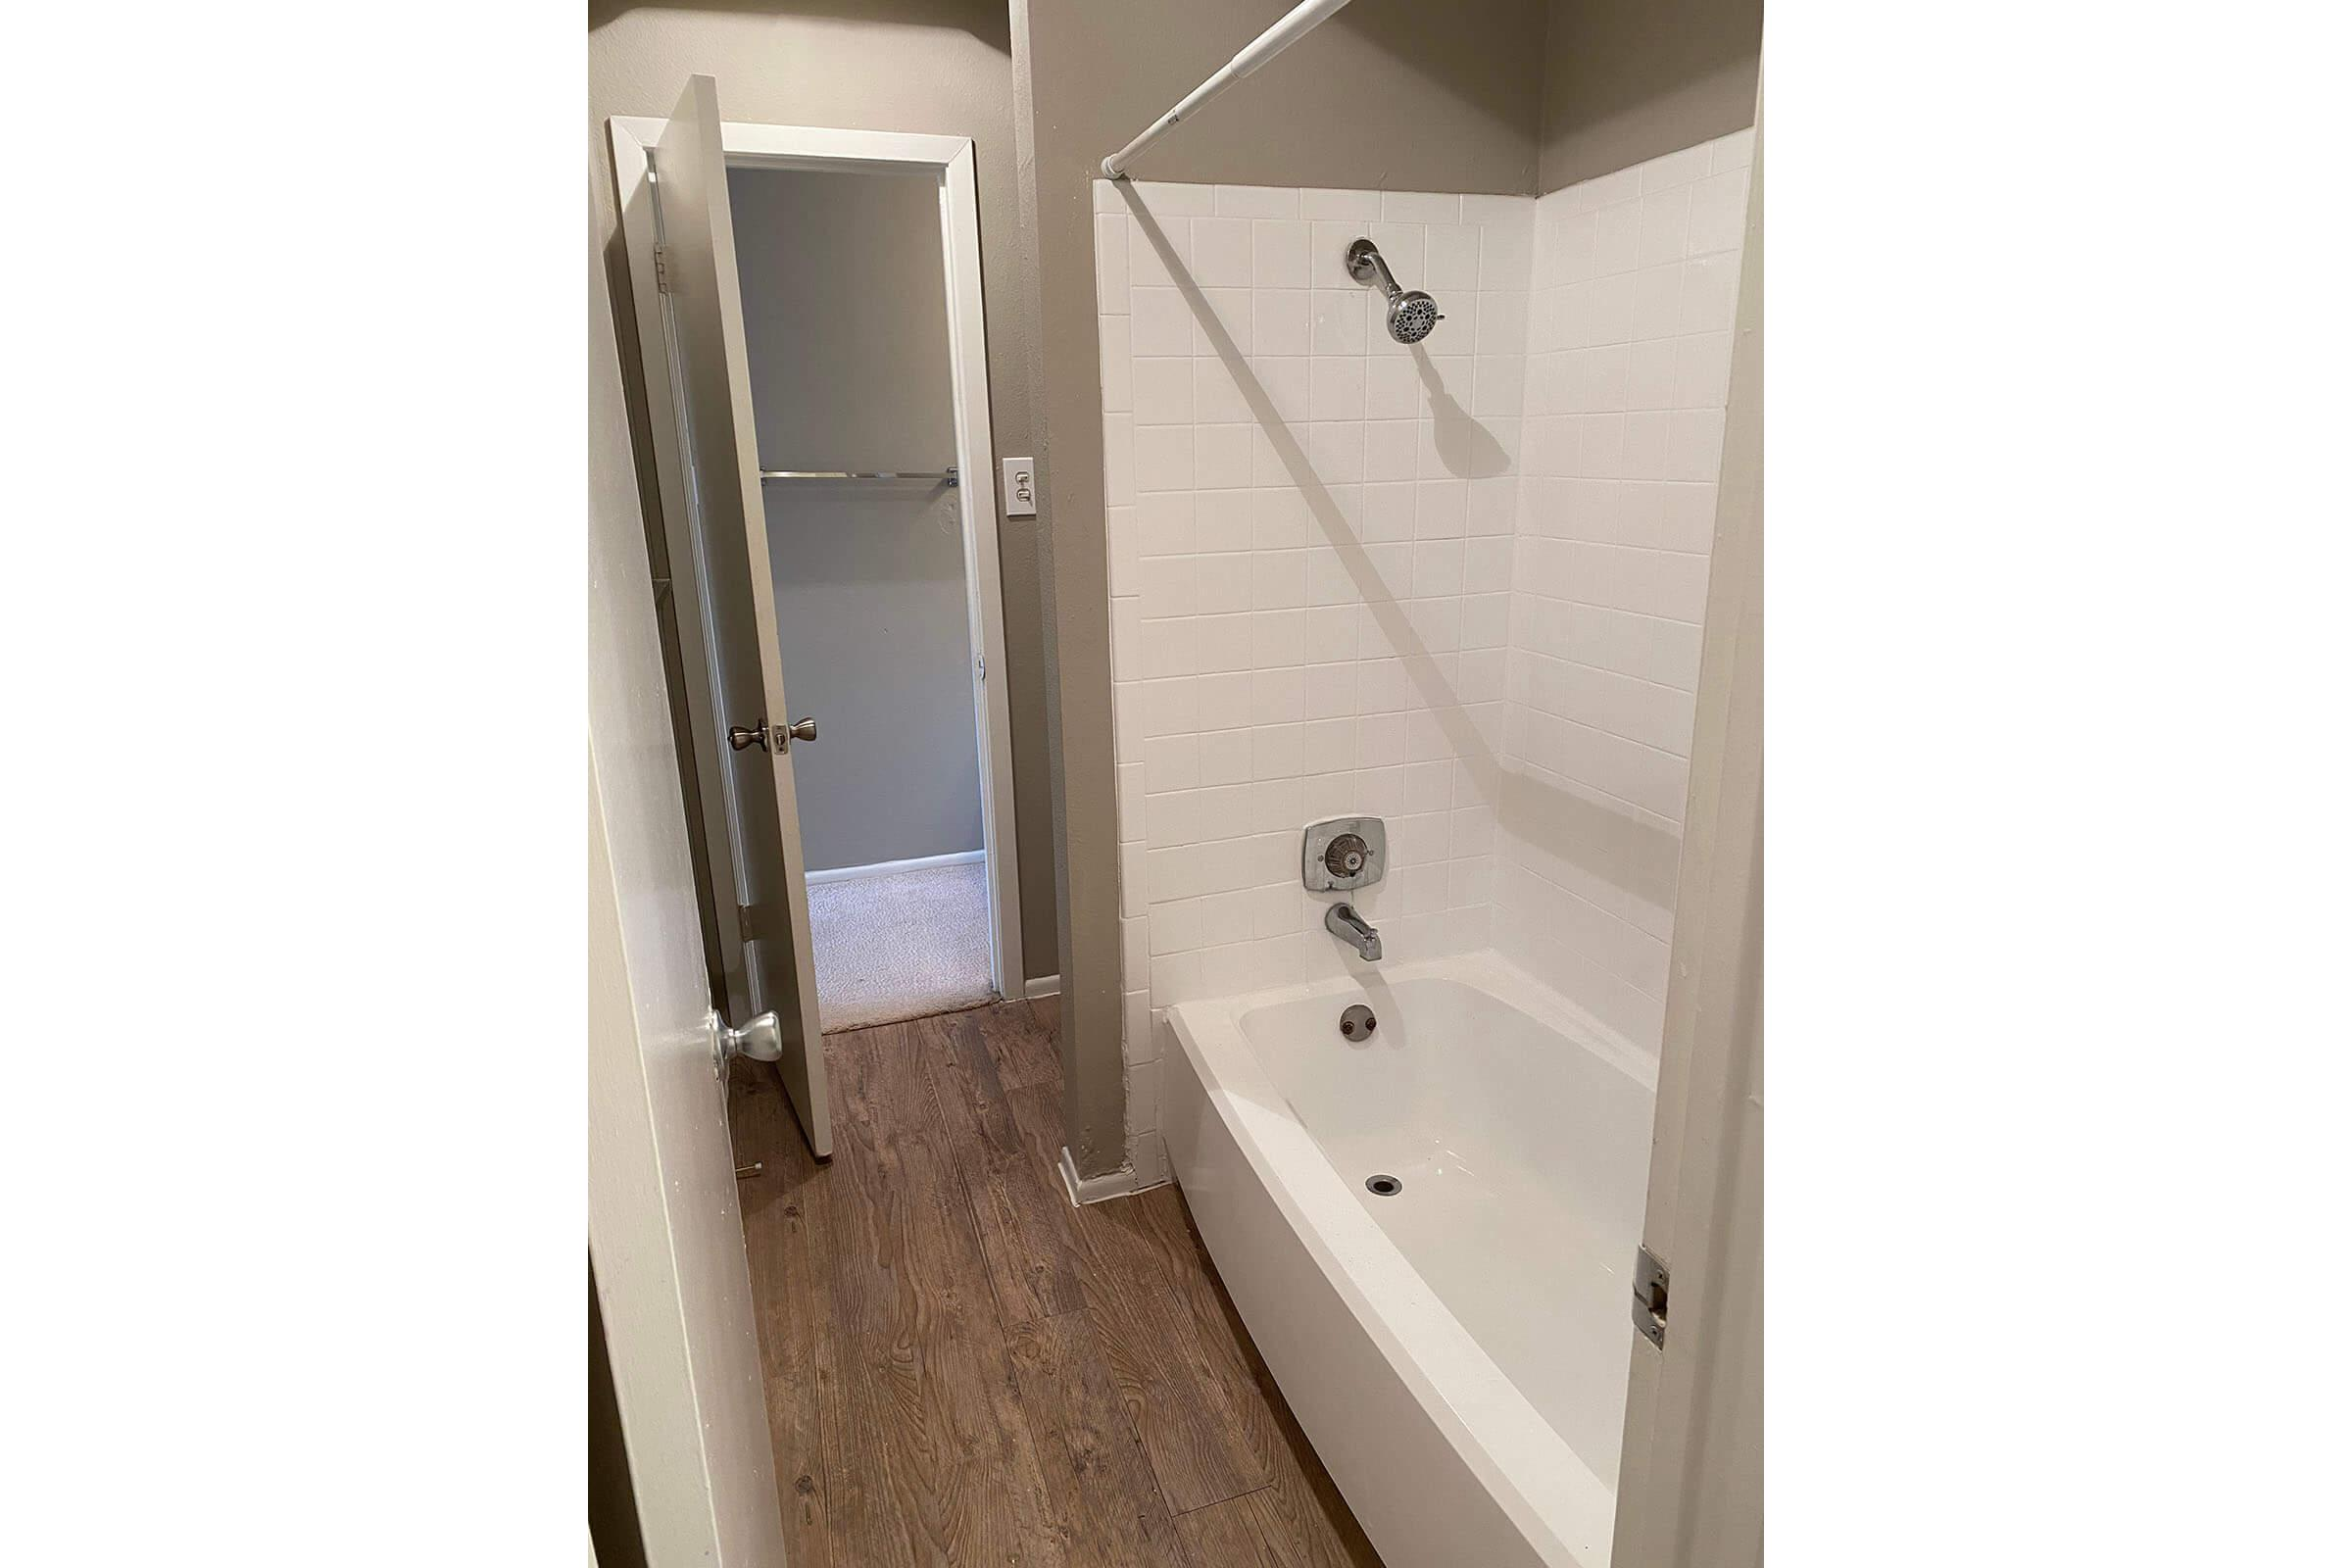 a view of the shower